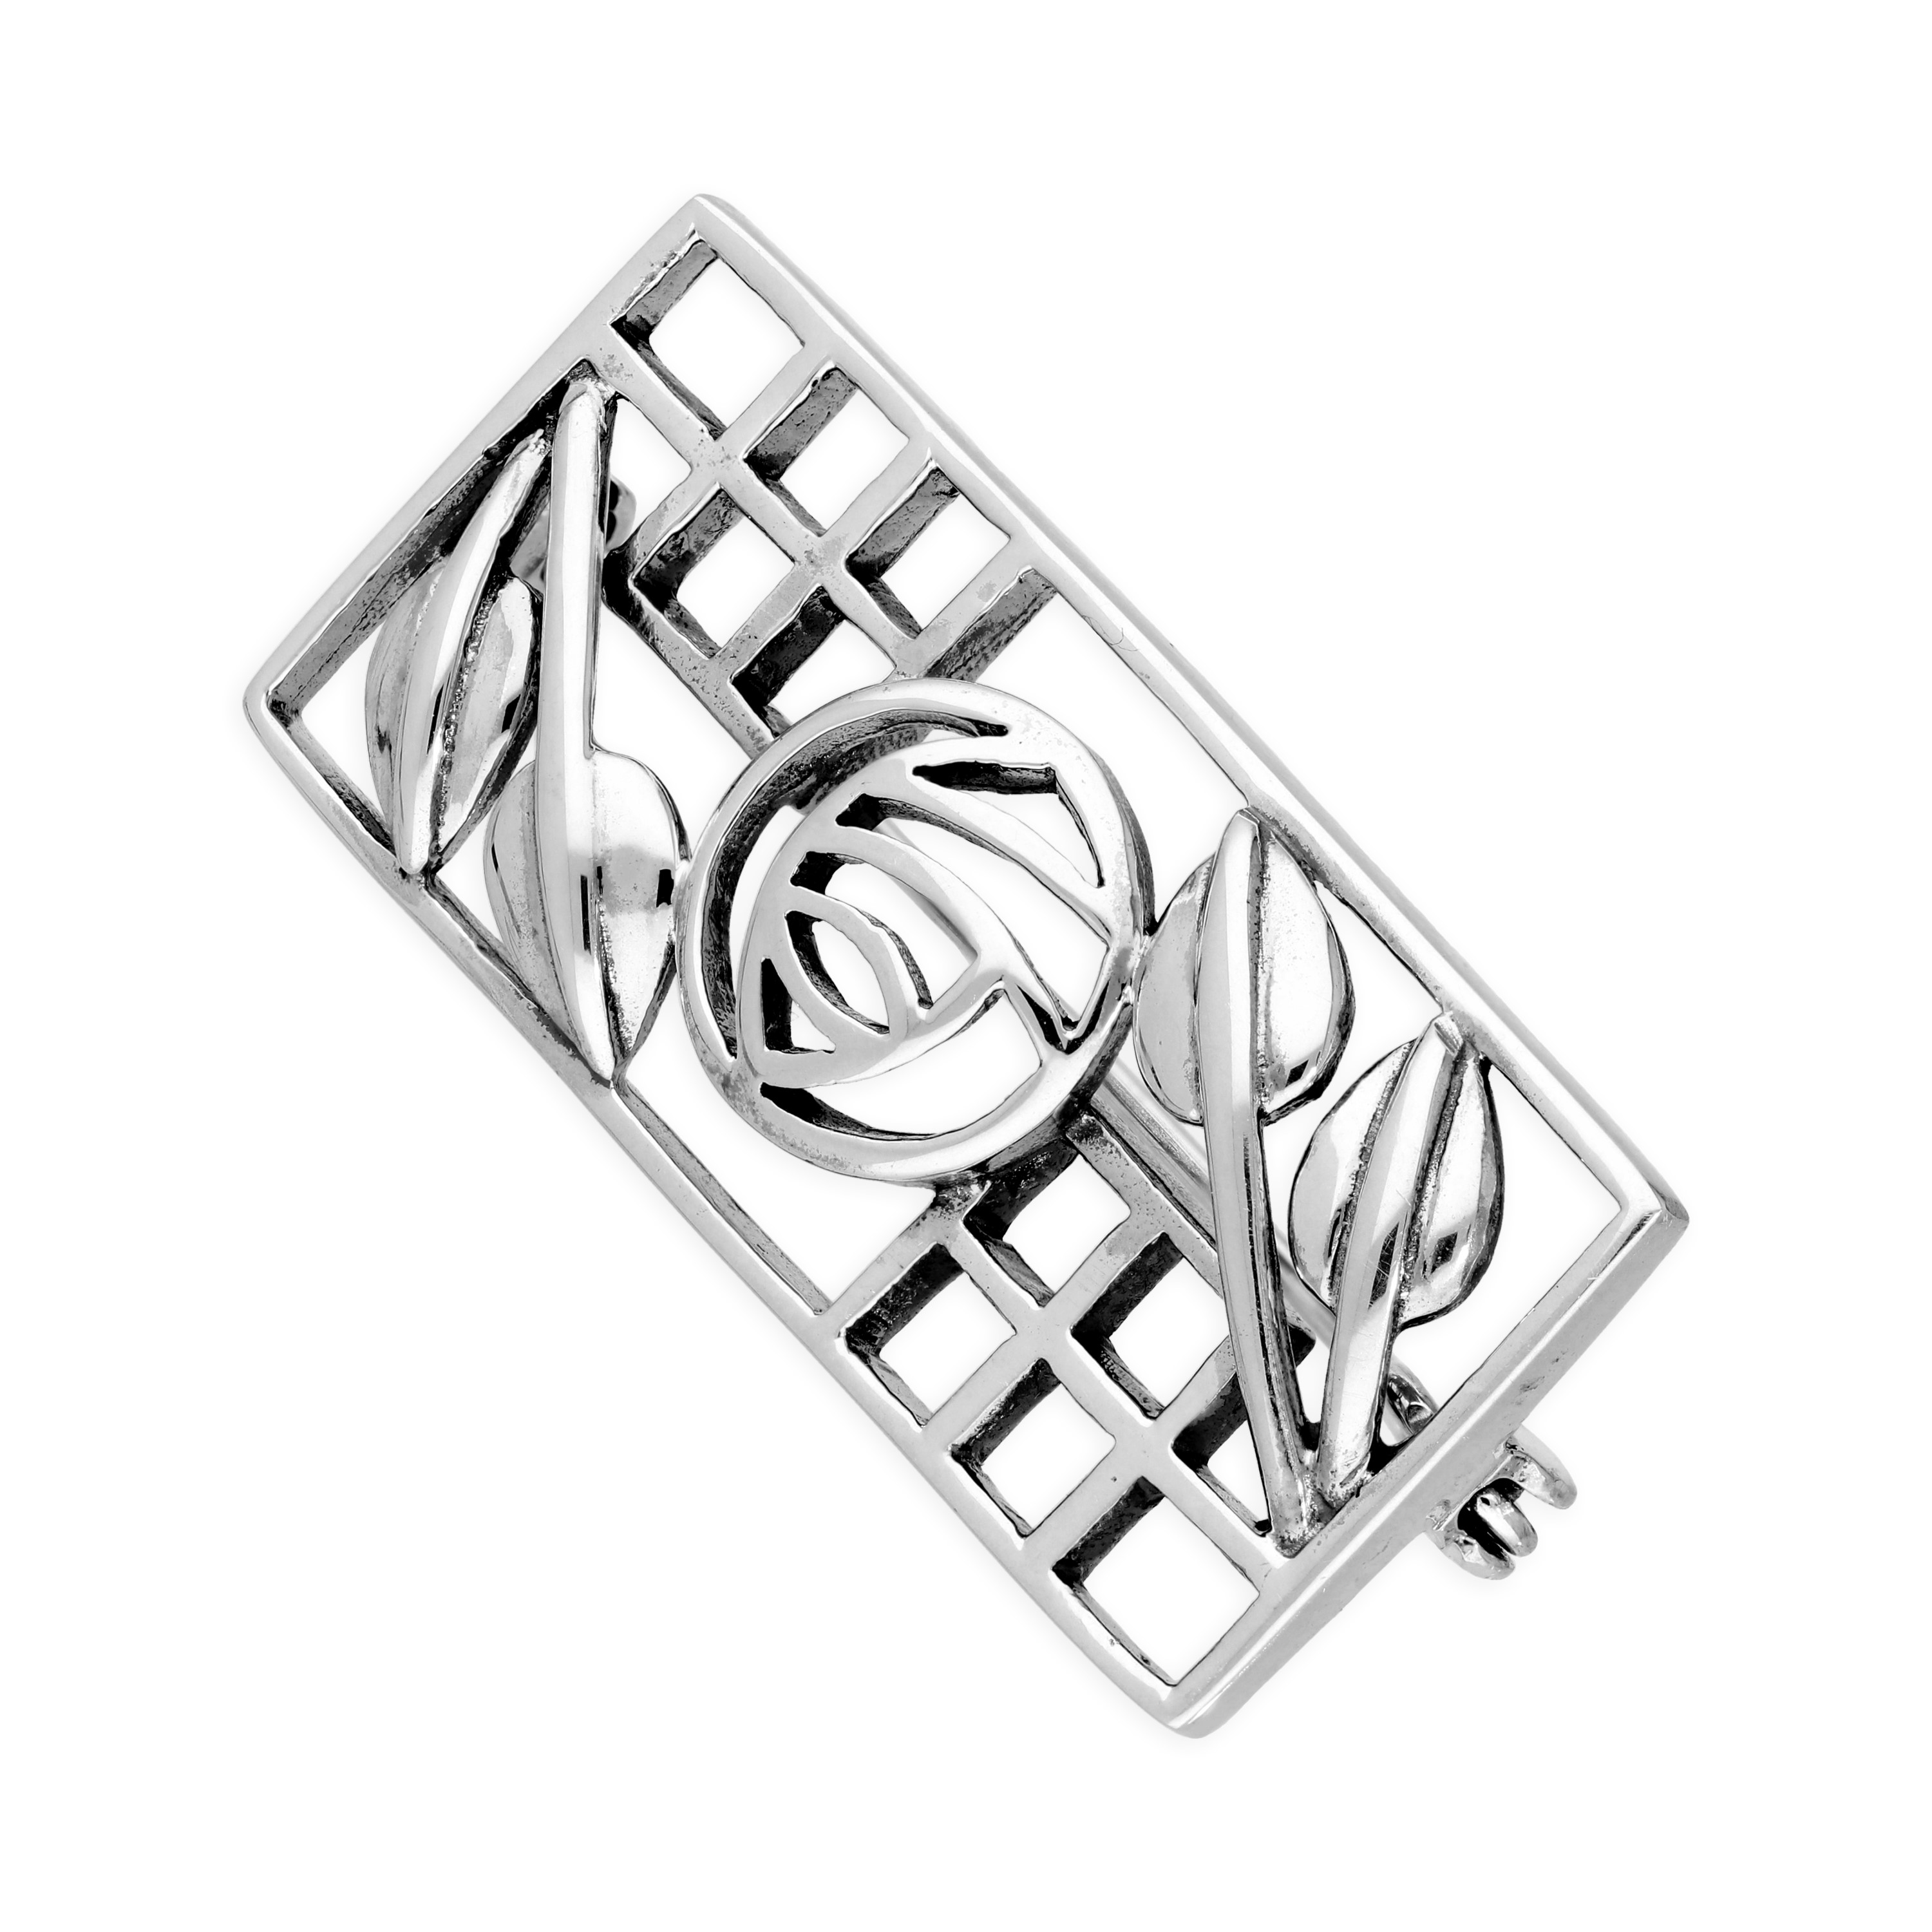 An image of Sterling Silver Rectangular Mackintosh Brooch